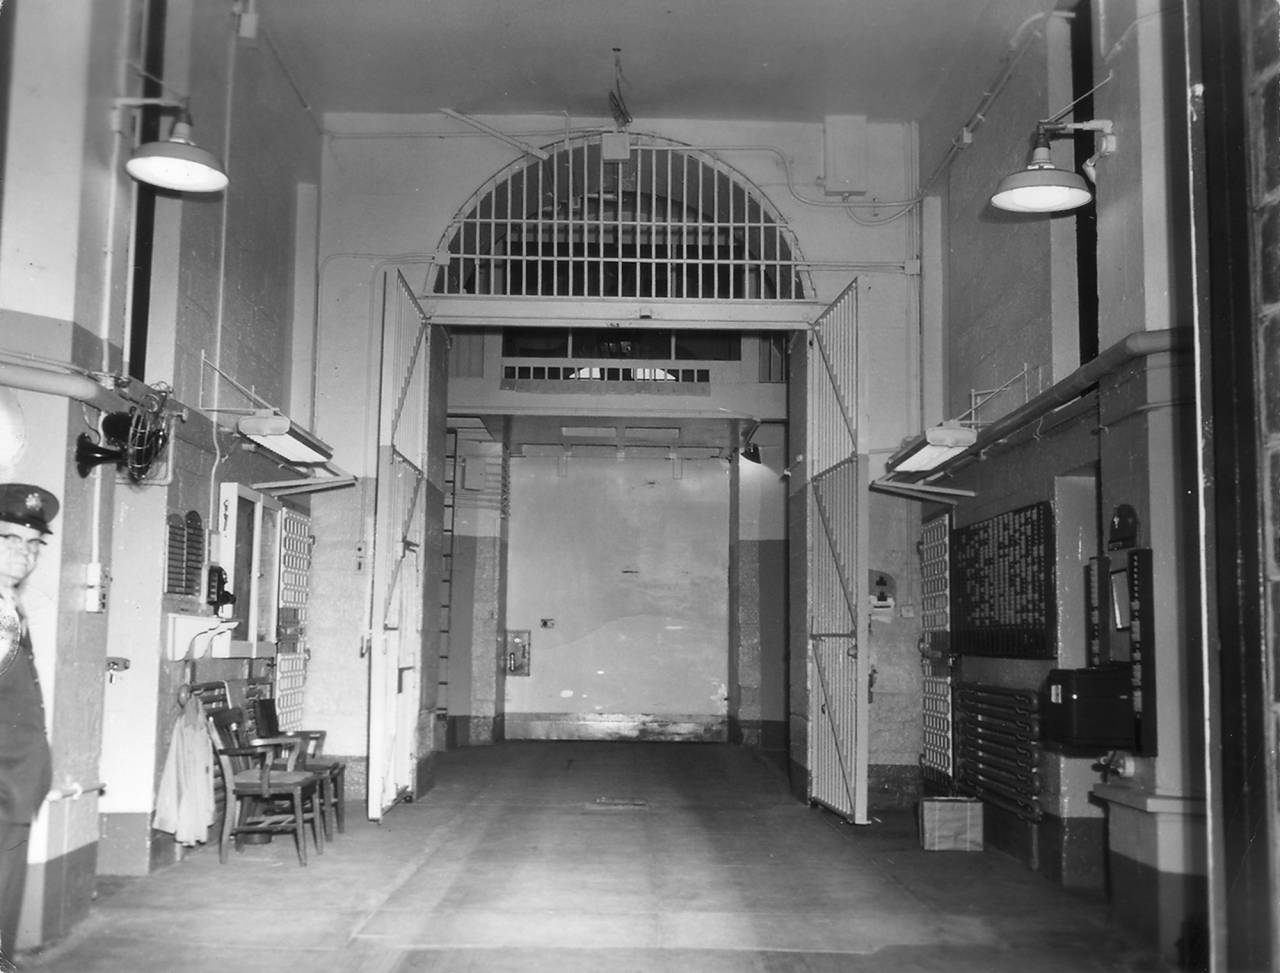 Inside of the gatehouse, c. 1960. Photo: collection of Eastern State Penitentiary Historic Site, gift of the Scheerer Family.